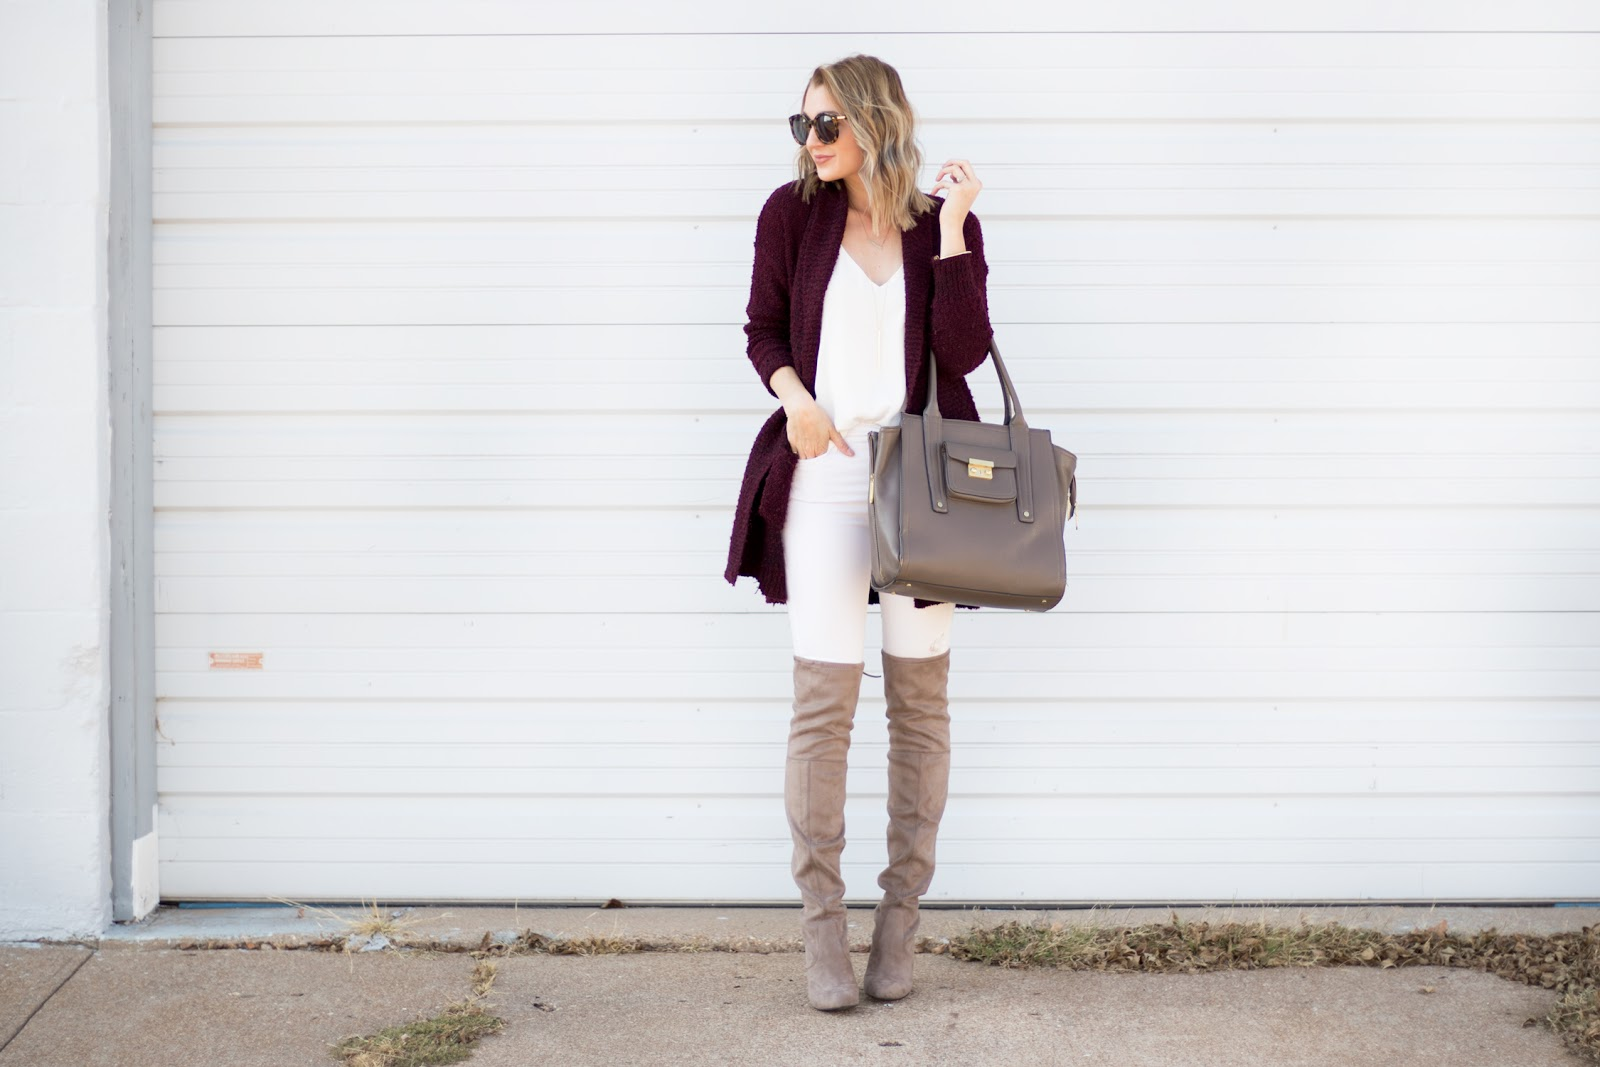 Burgundy and cream outfit